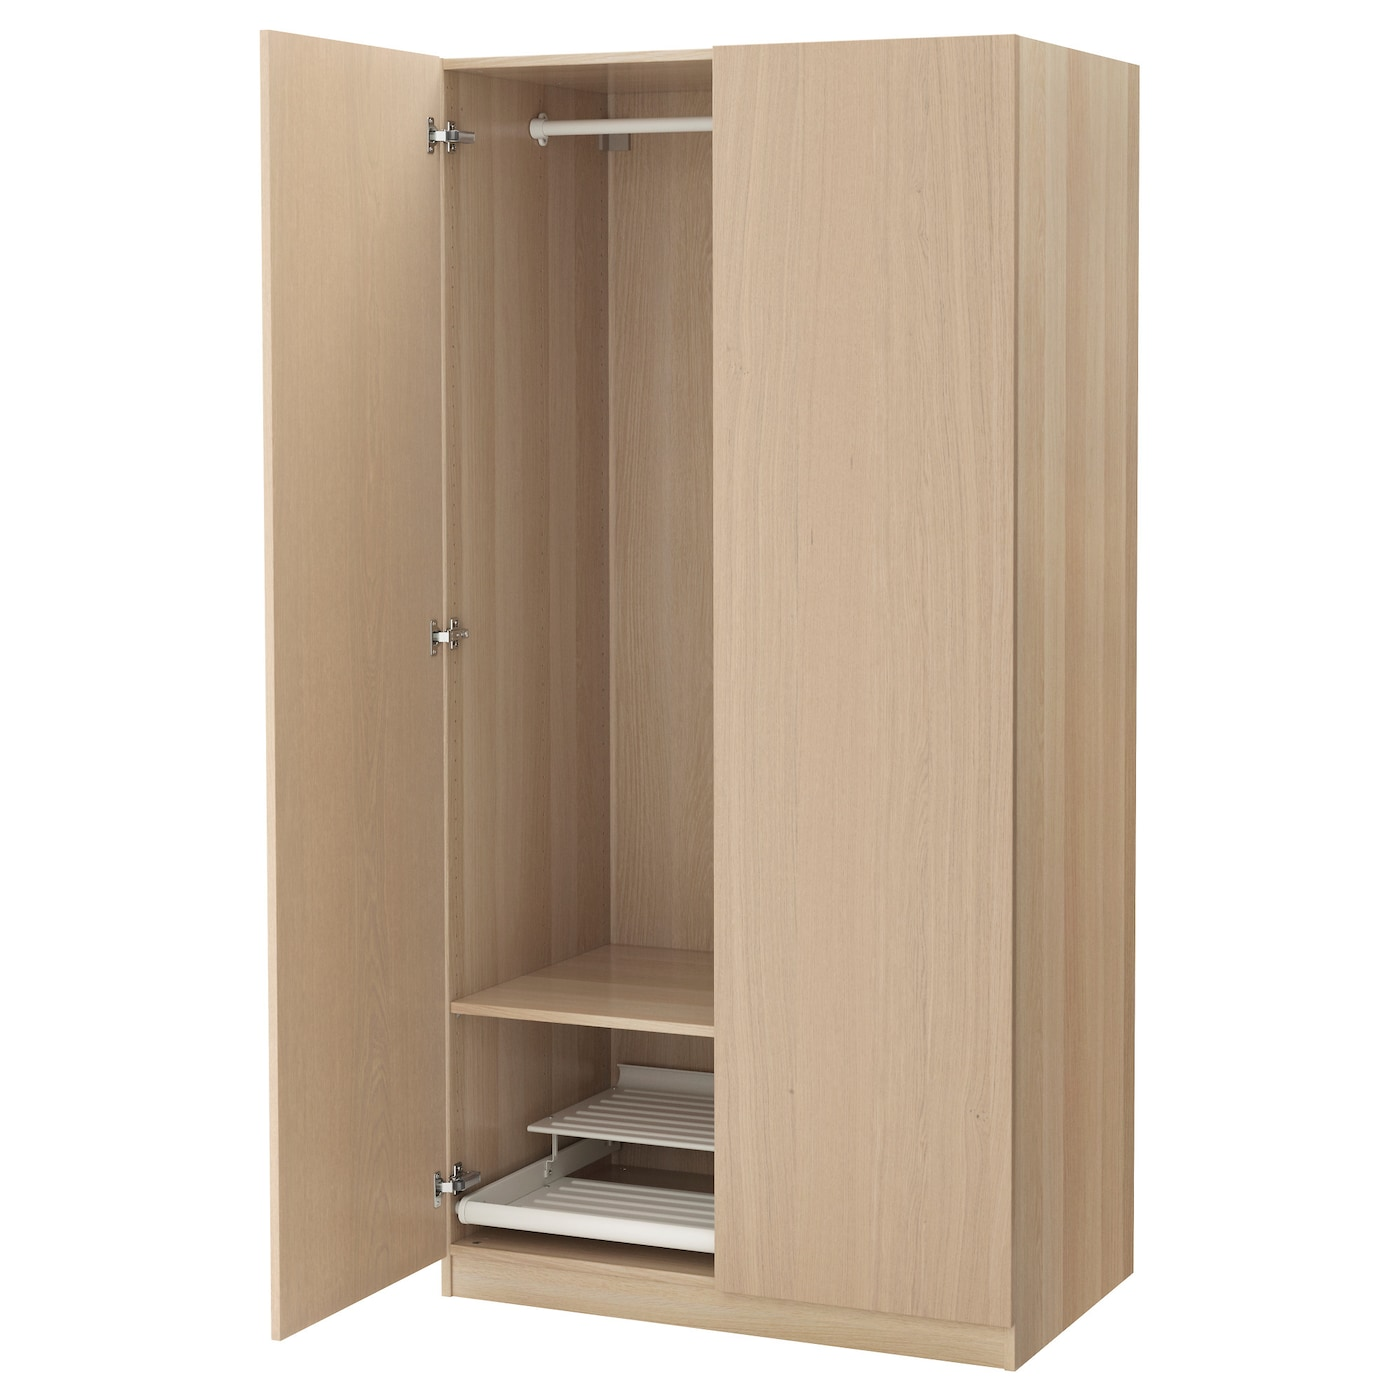 pax wardrobe white stained oak effect nexus white stained oak veneer 100x60x201 cm ikea. Black Bedroom Furniture Sets. Home Design Ideas